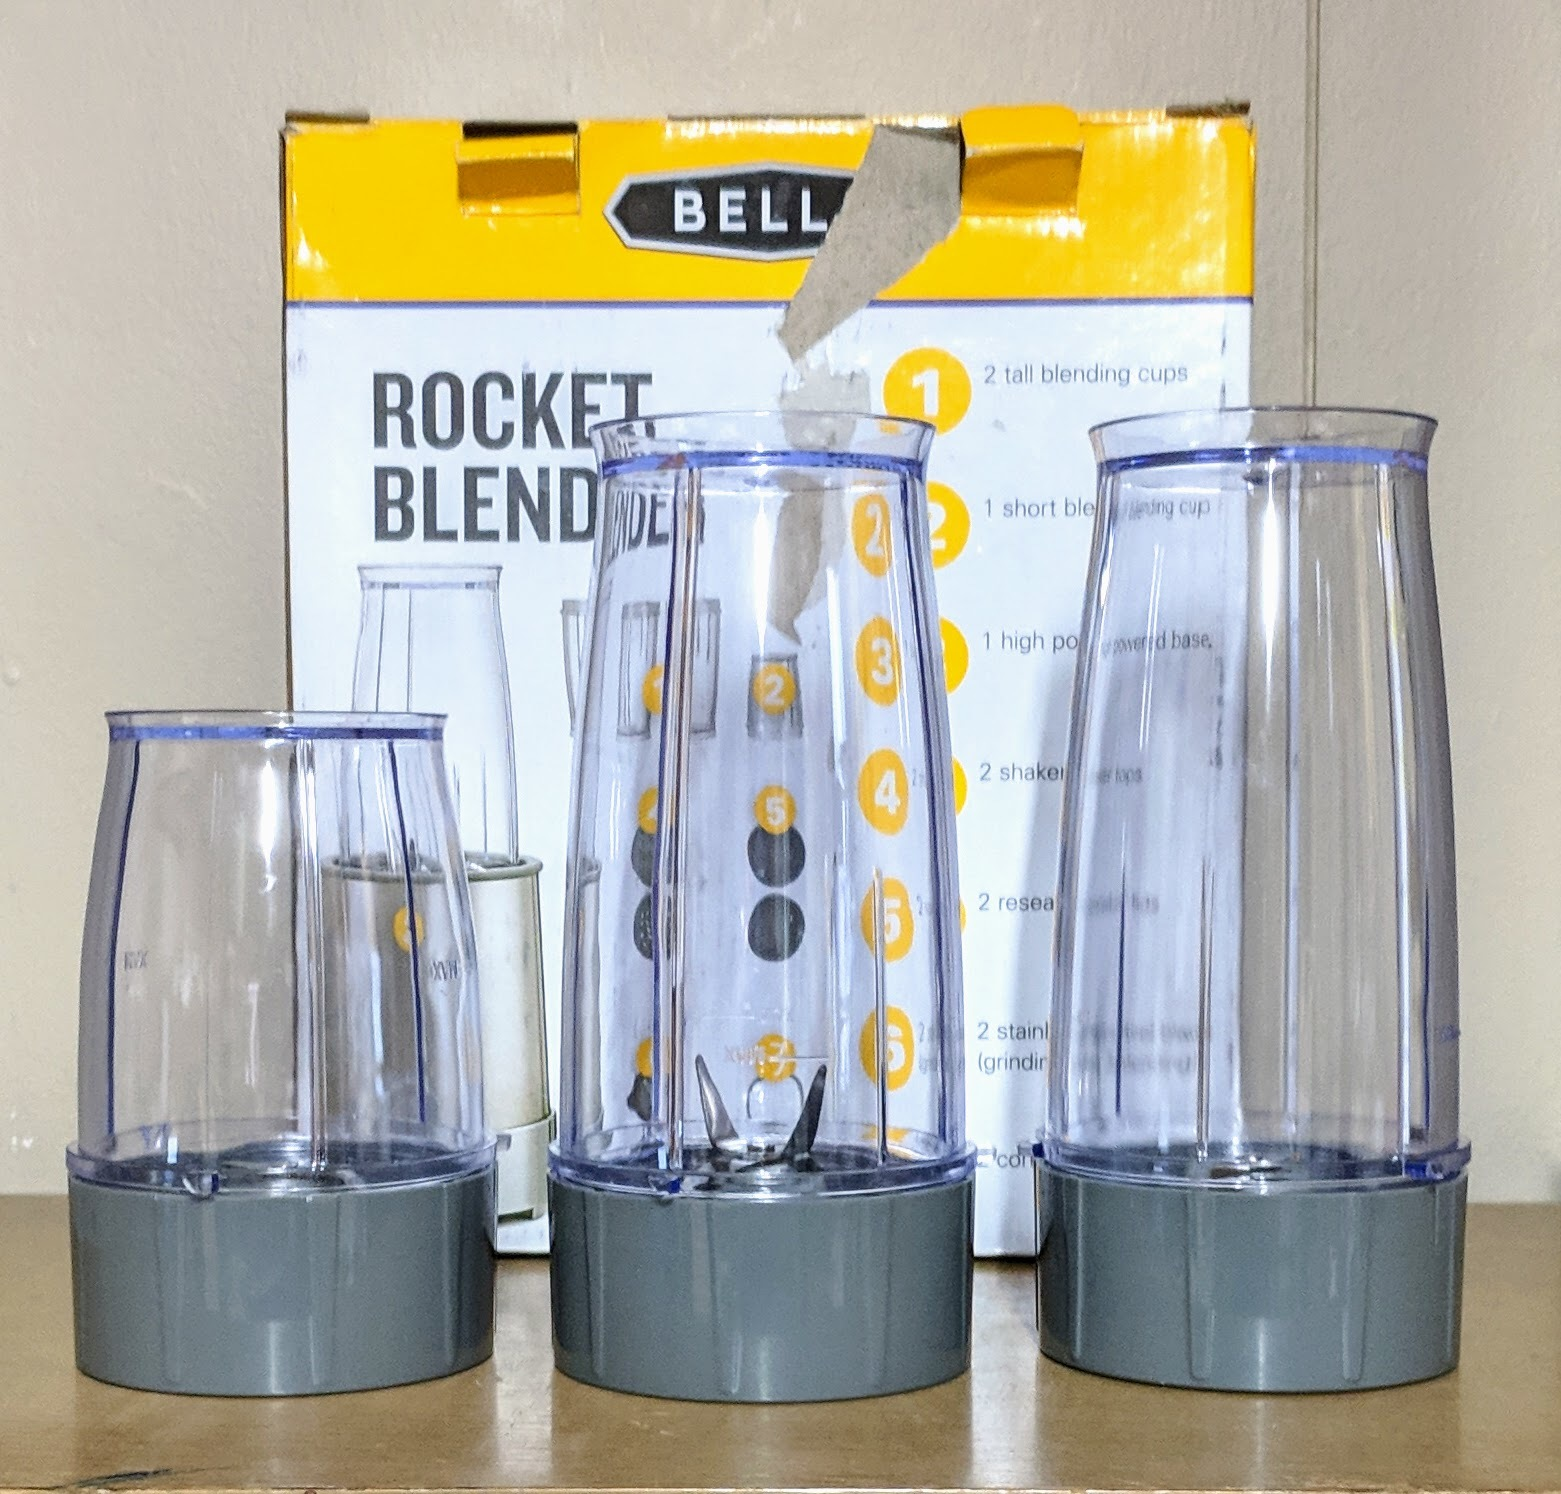 Bella Rocket Blender Replacement Cups and similar items